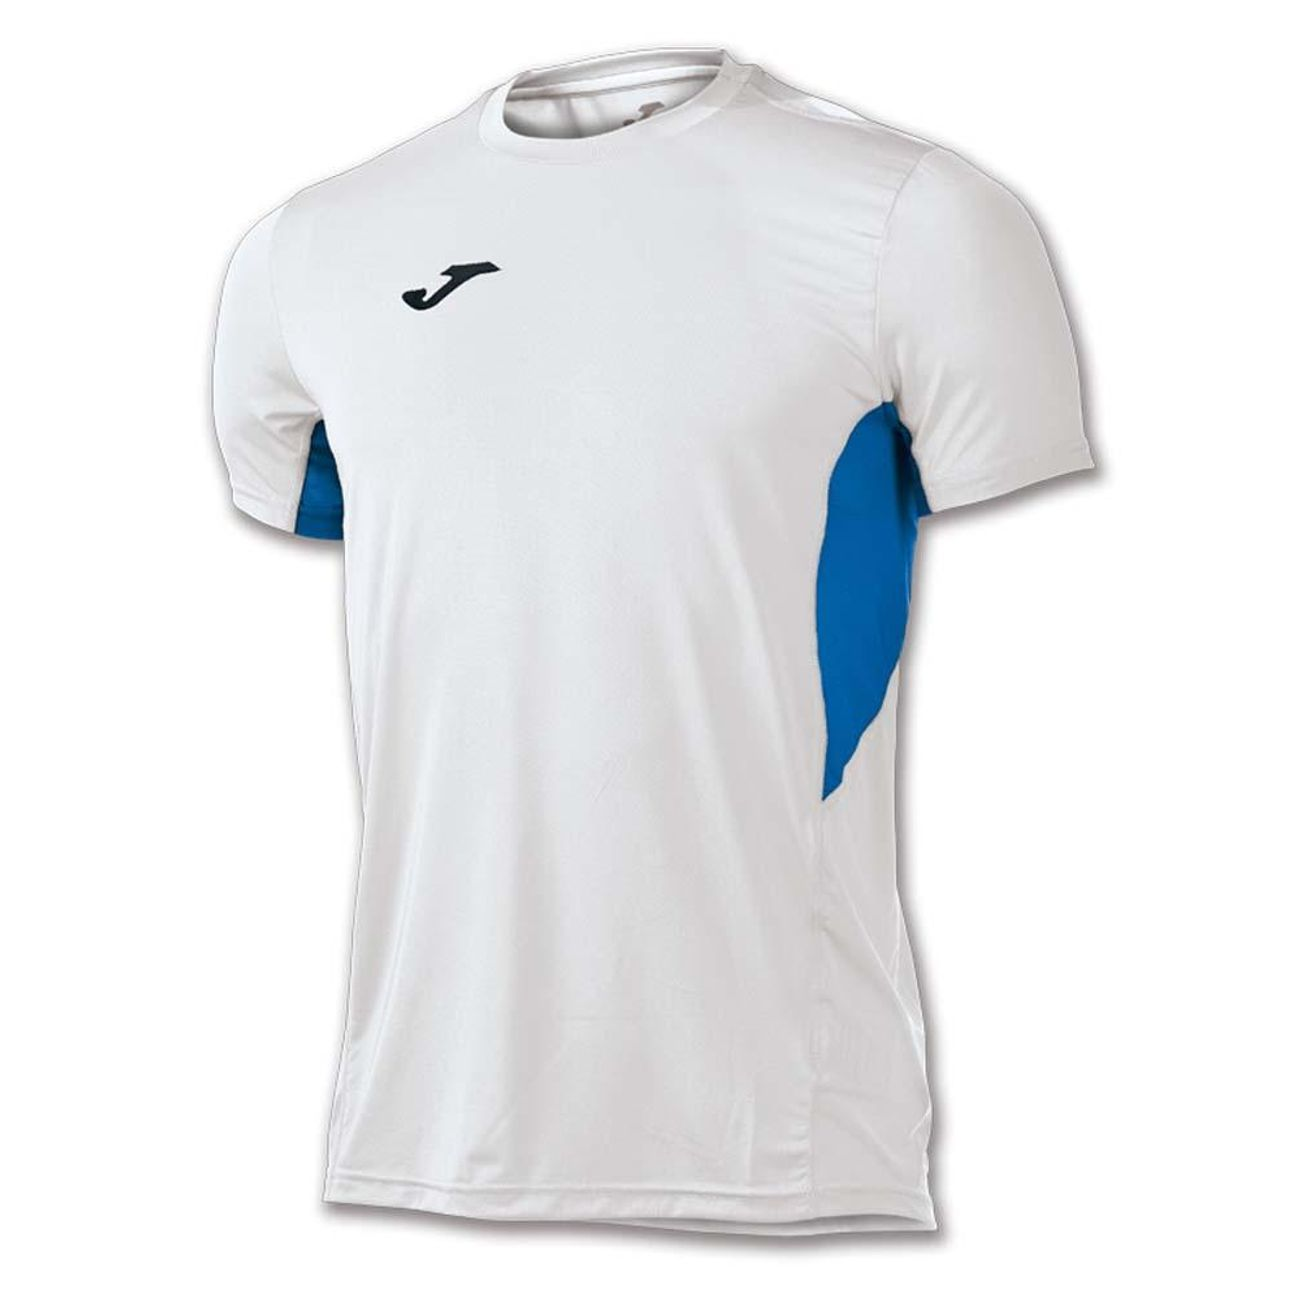 S Fitness Eh92idewy Ii Record Homme Joma Aq4LRj35